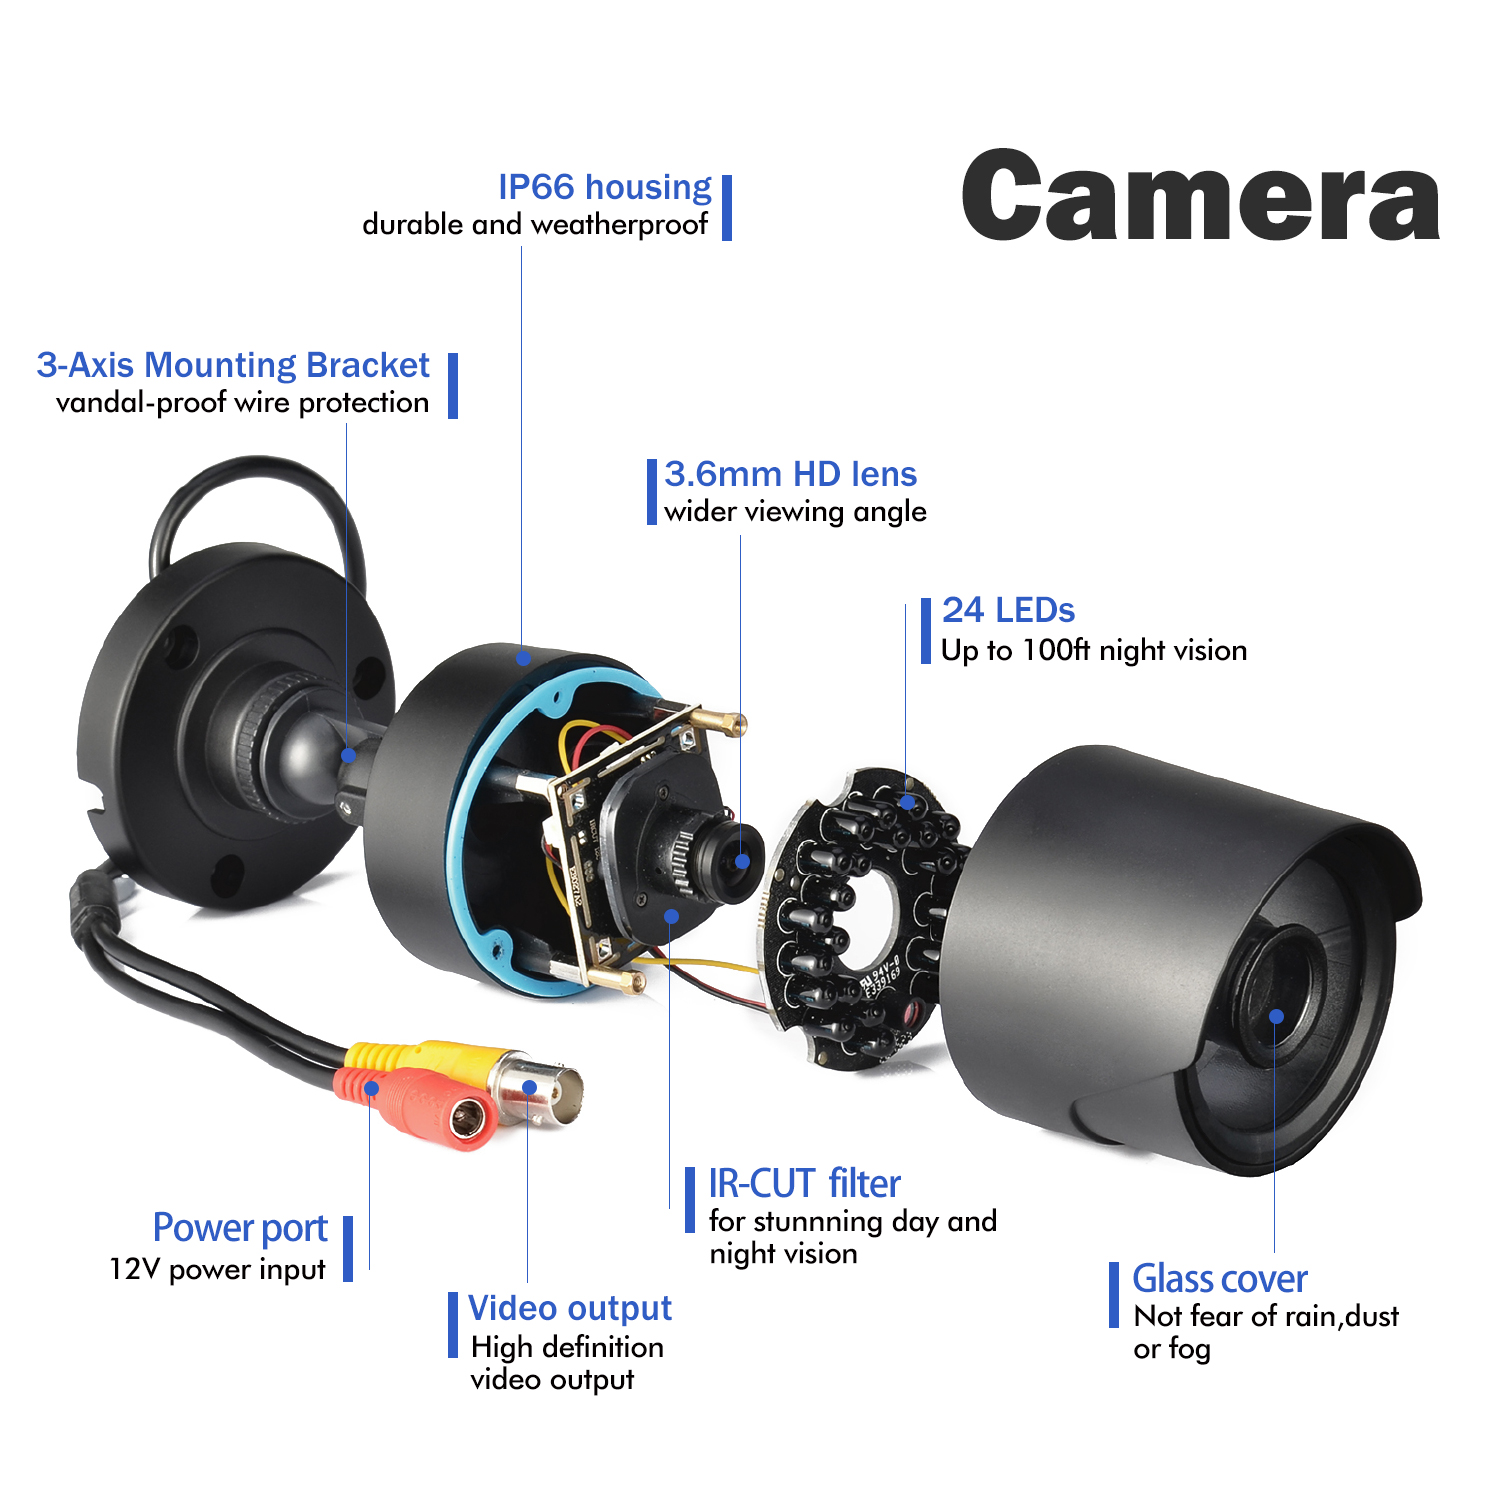 Ir C71k Security Camera Wiring Diagram Cameras Just Schematic Rh Lailamaed Co Uk